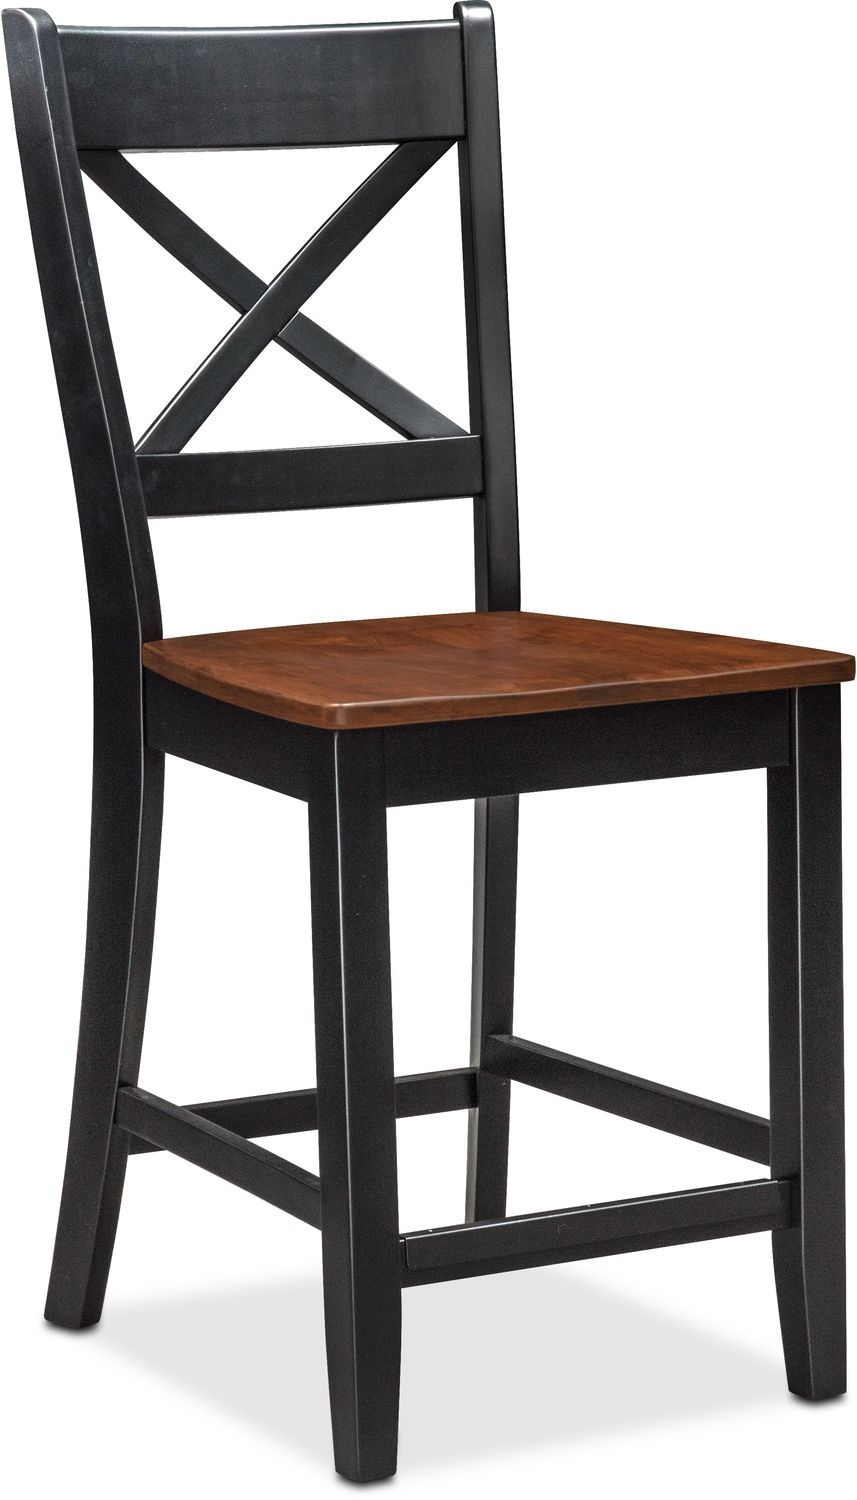 Counter Height Eating Bar : Nantucket Breakfast Bar and 2 Counter-Height Side Chairs - Black and ...